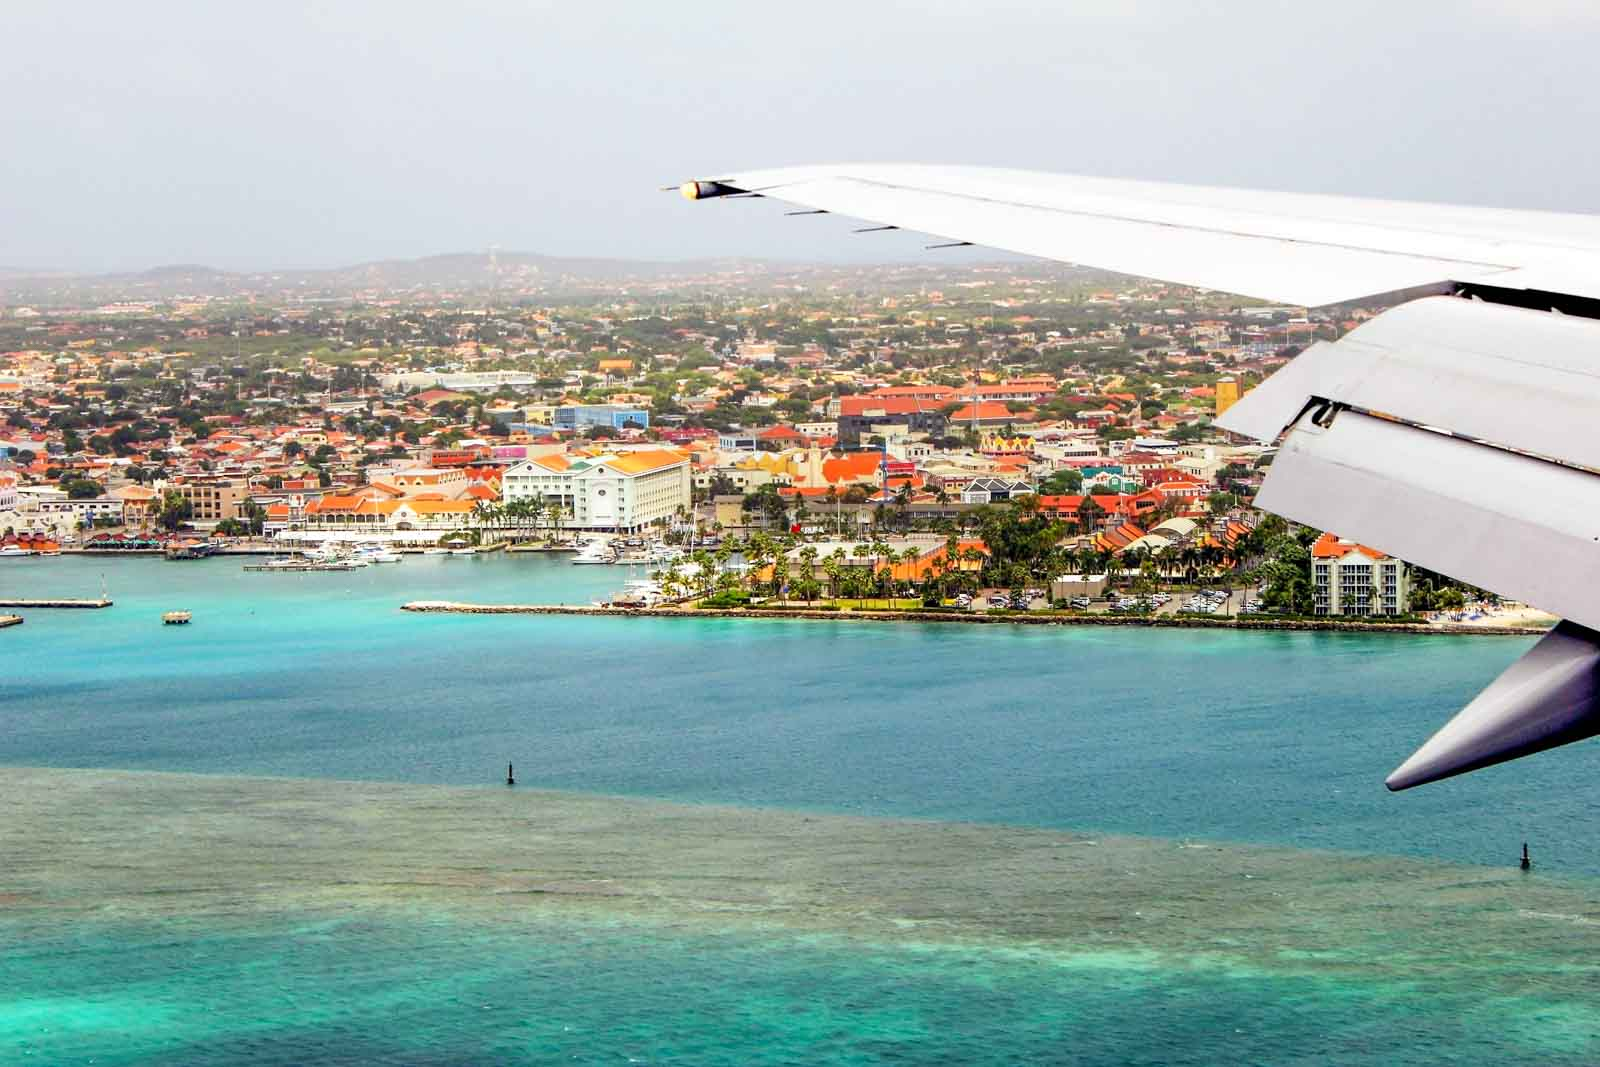 View from the plane window flying into Aruba